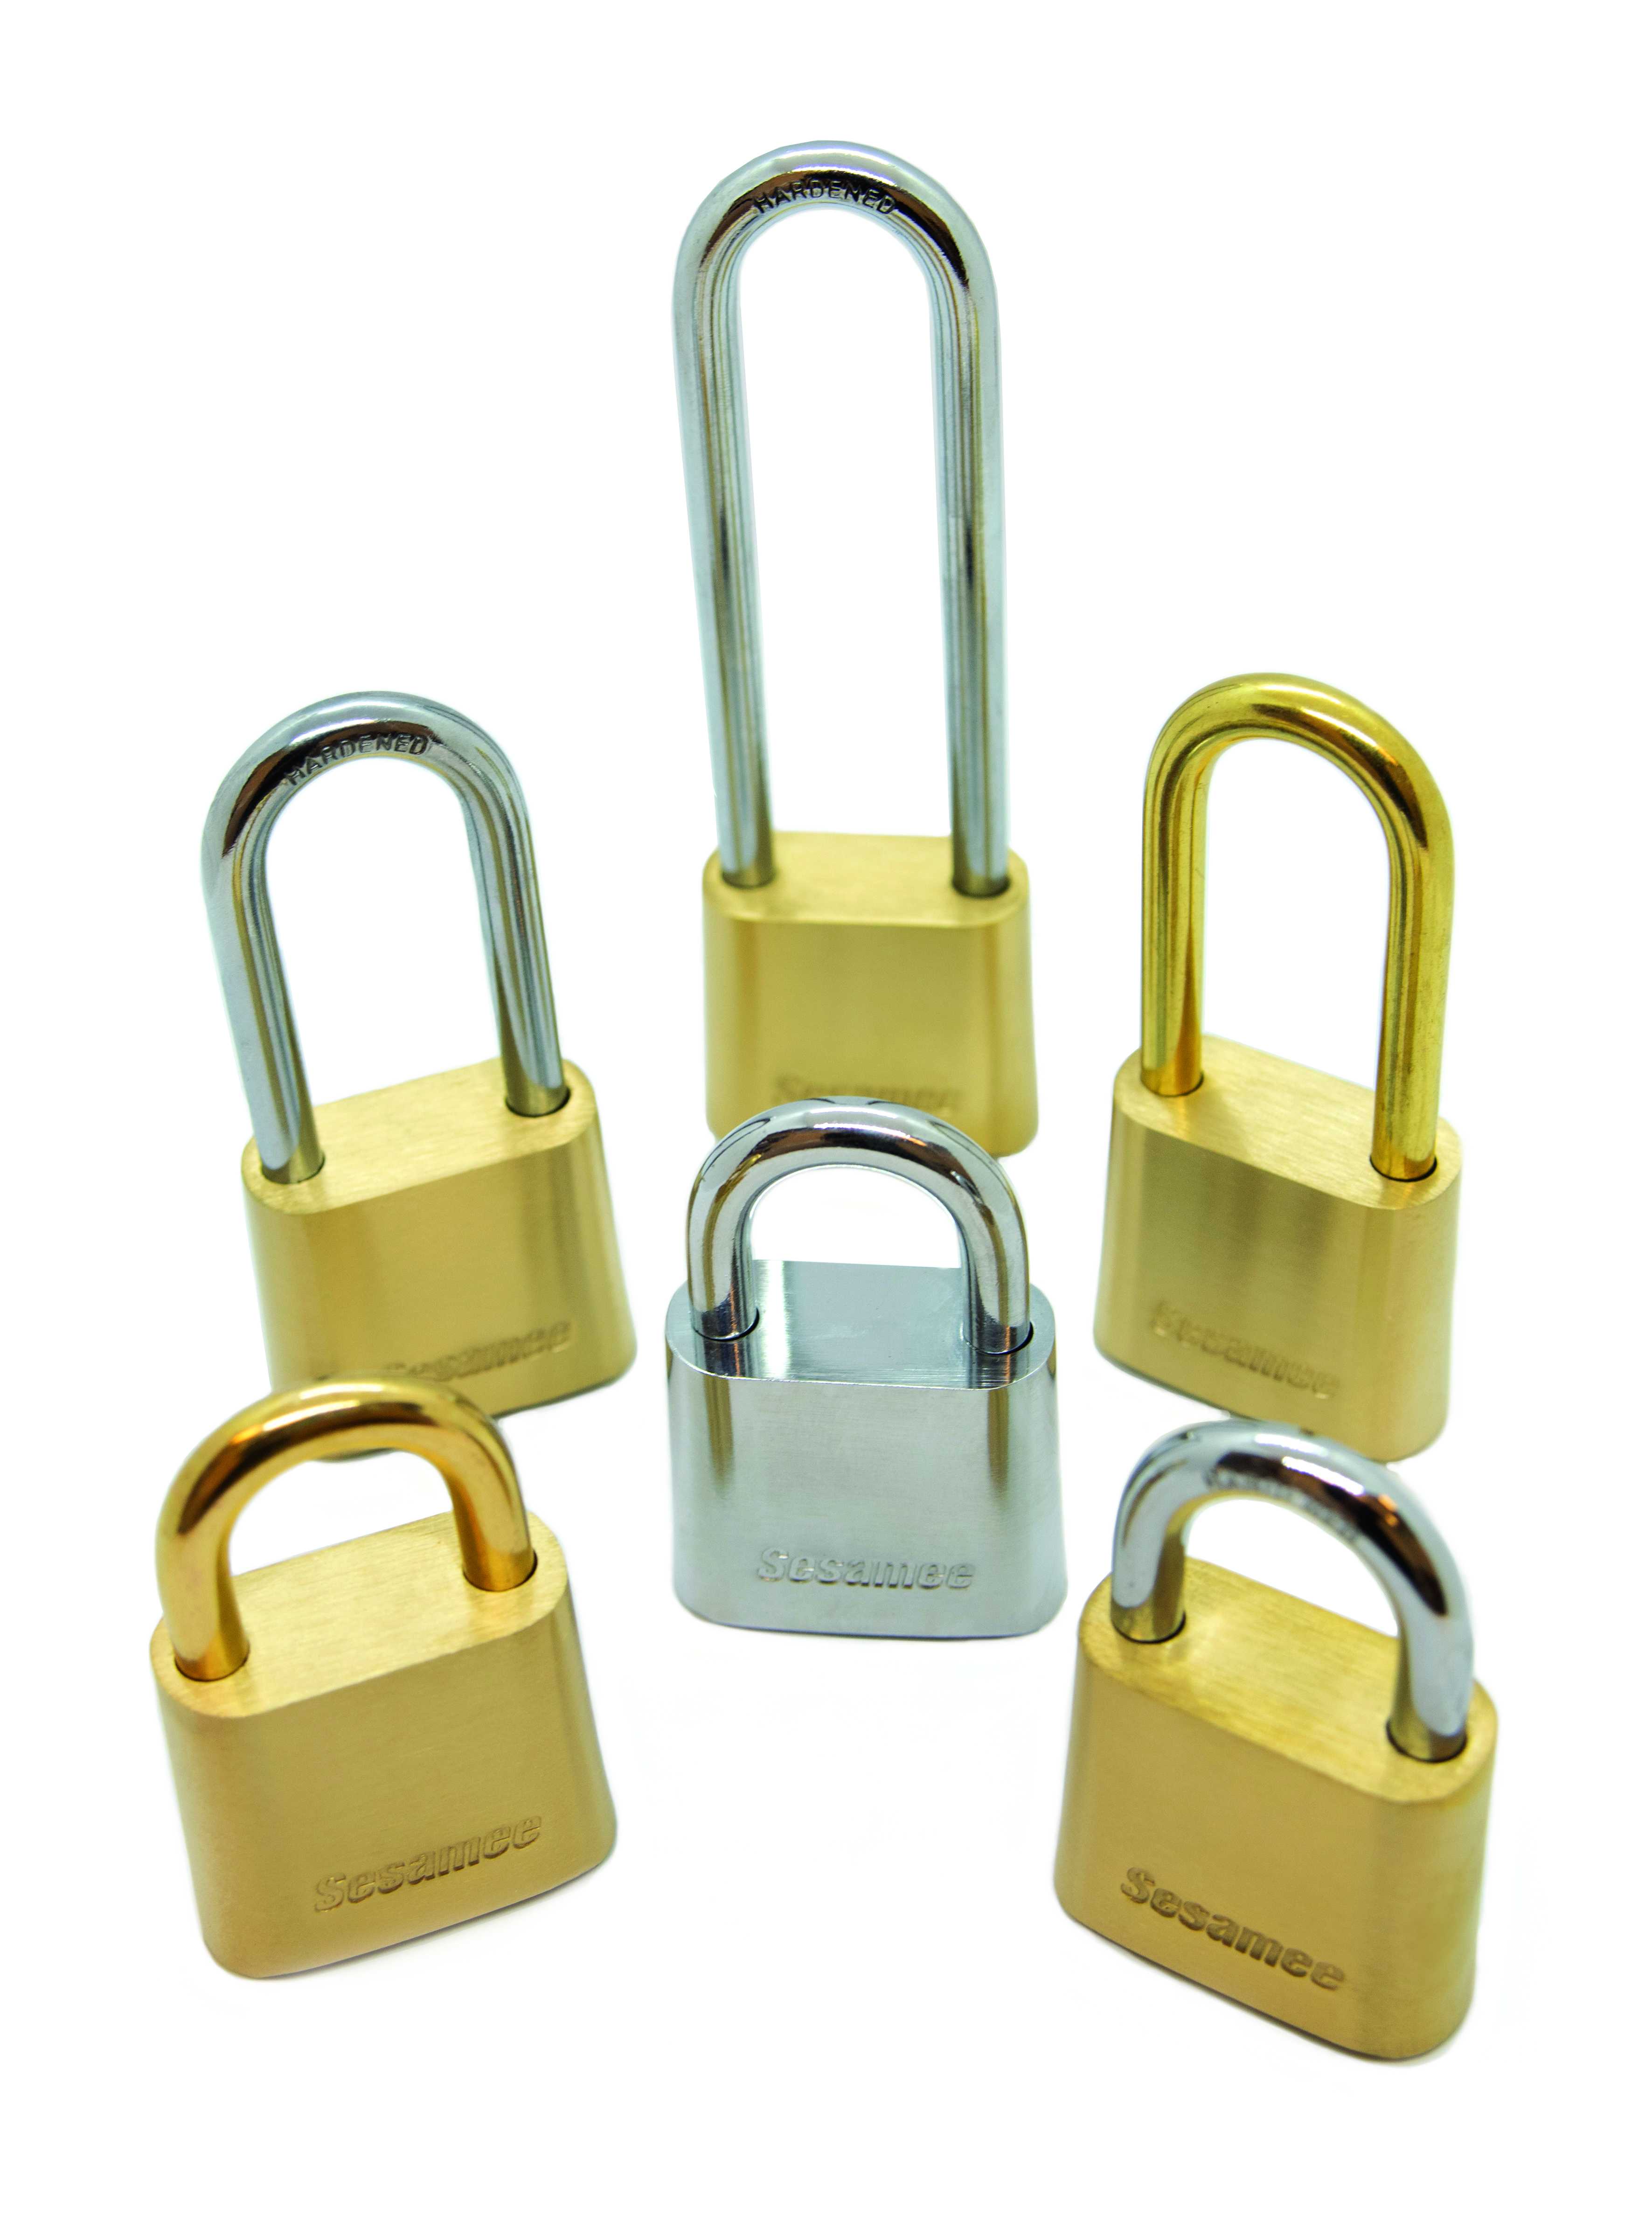 Sesamee 436/437 Series All Brass Dial Padlock K0436